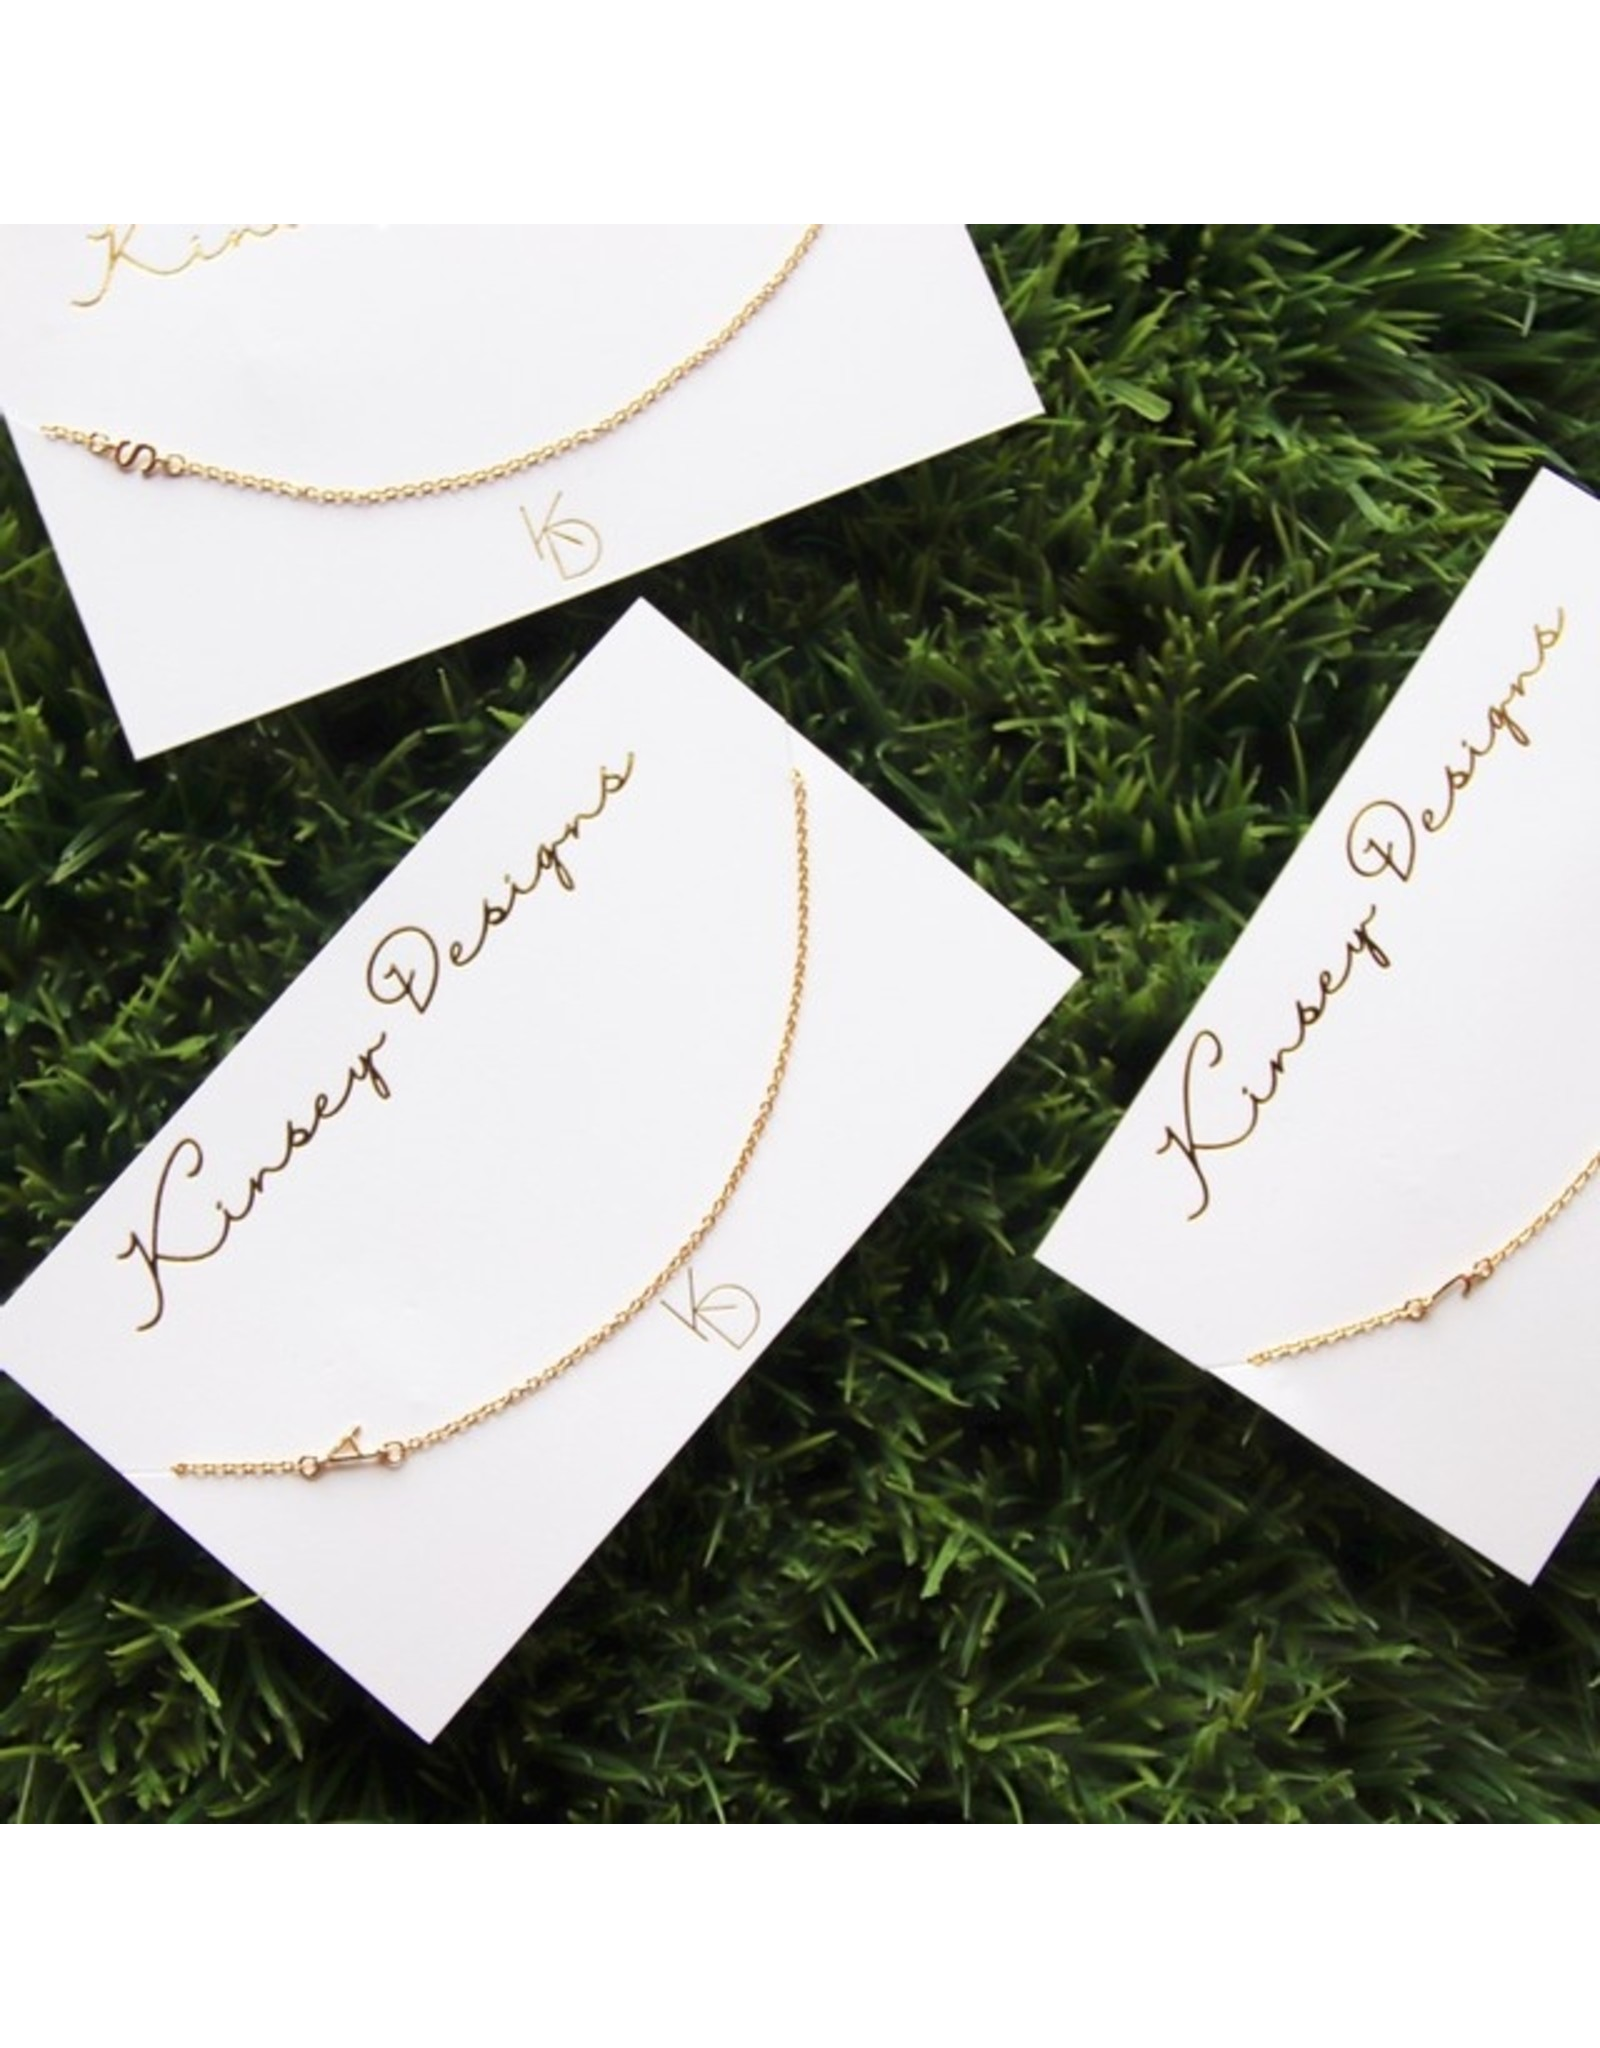 KINSEY DESIGNS IBIS DAINTY INITIAL NECKLACE